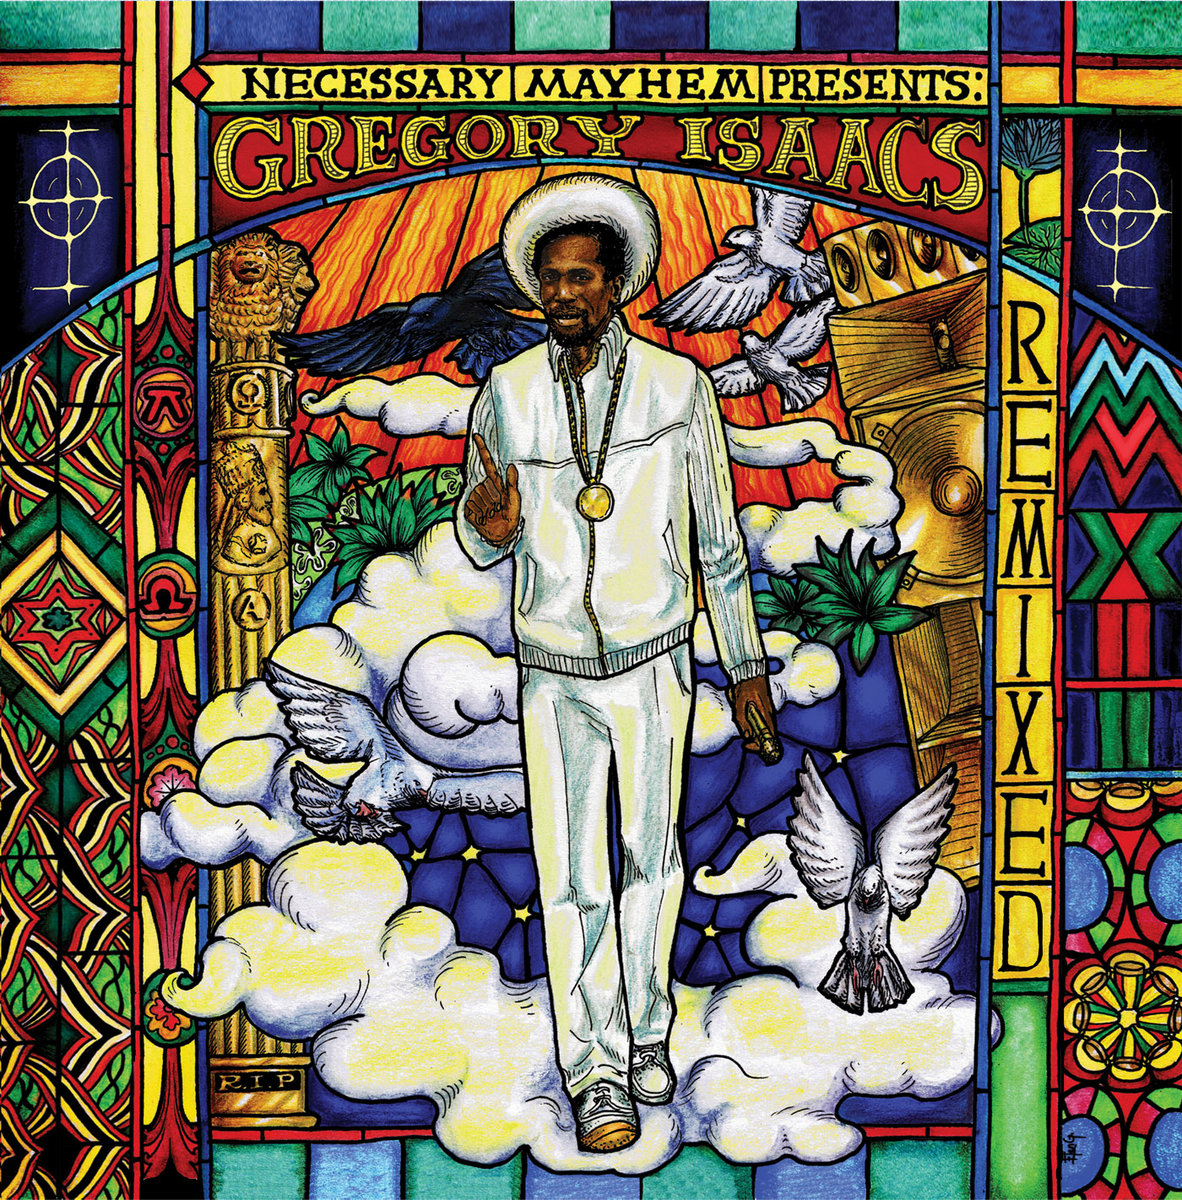 Gregory isaacs talk don't bother me (2018) free download.